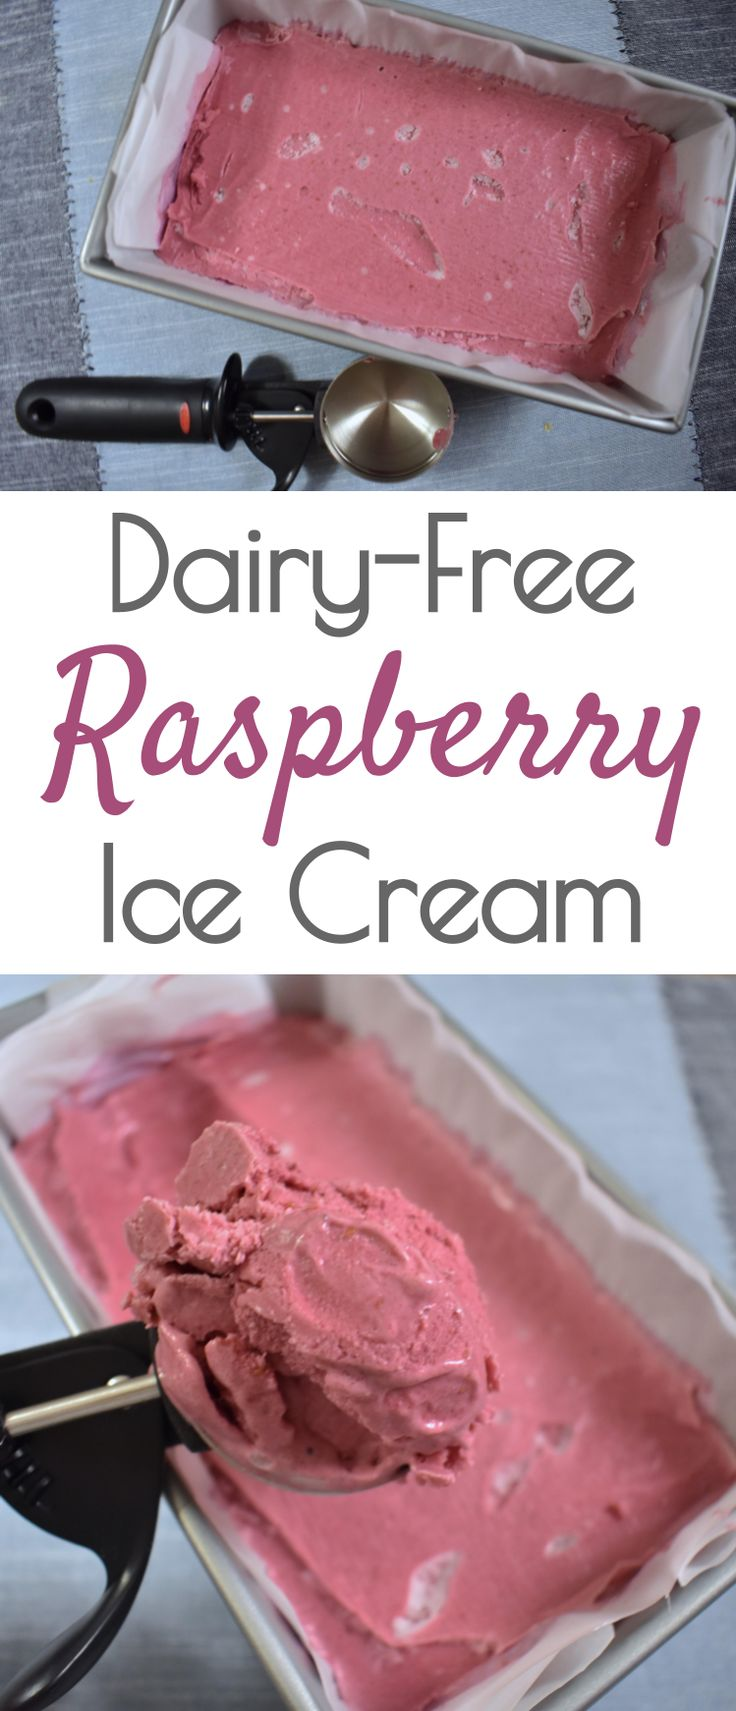 dairy free raspberry ice cream, nicecream, vegan ice cream, healthy ice cream, plant based ice cream